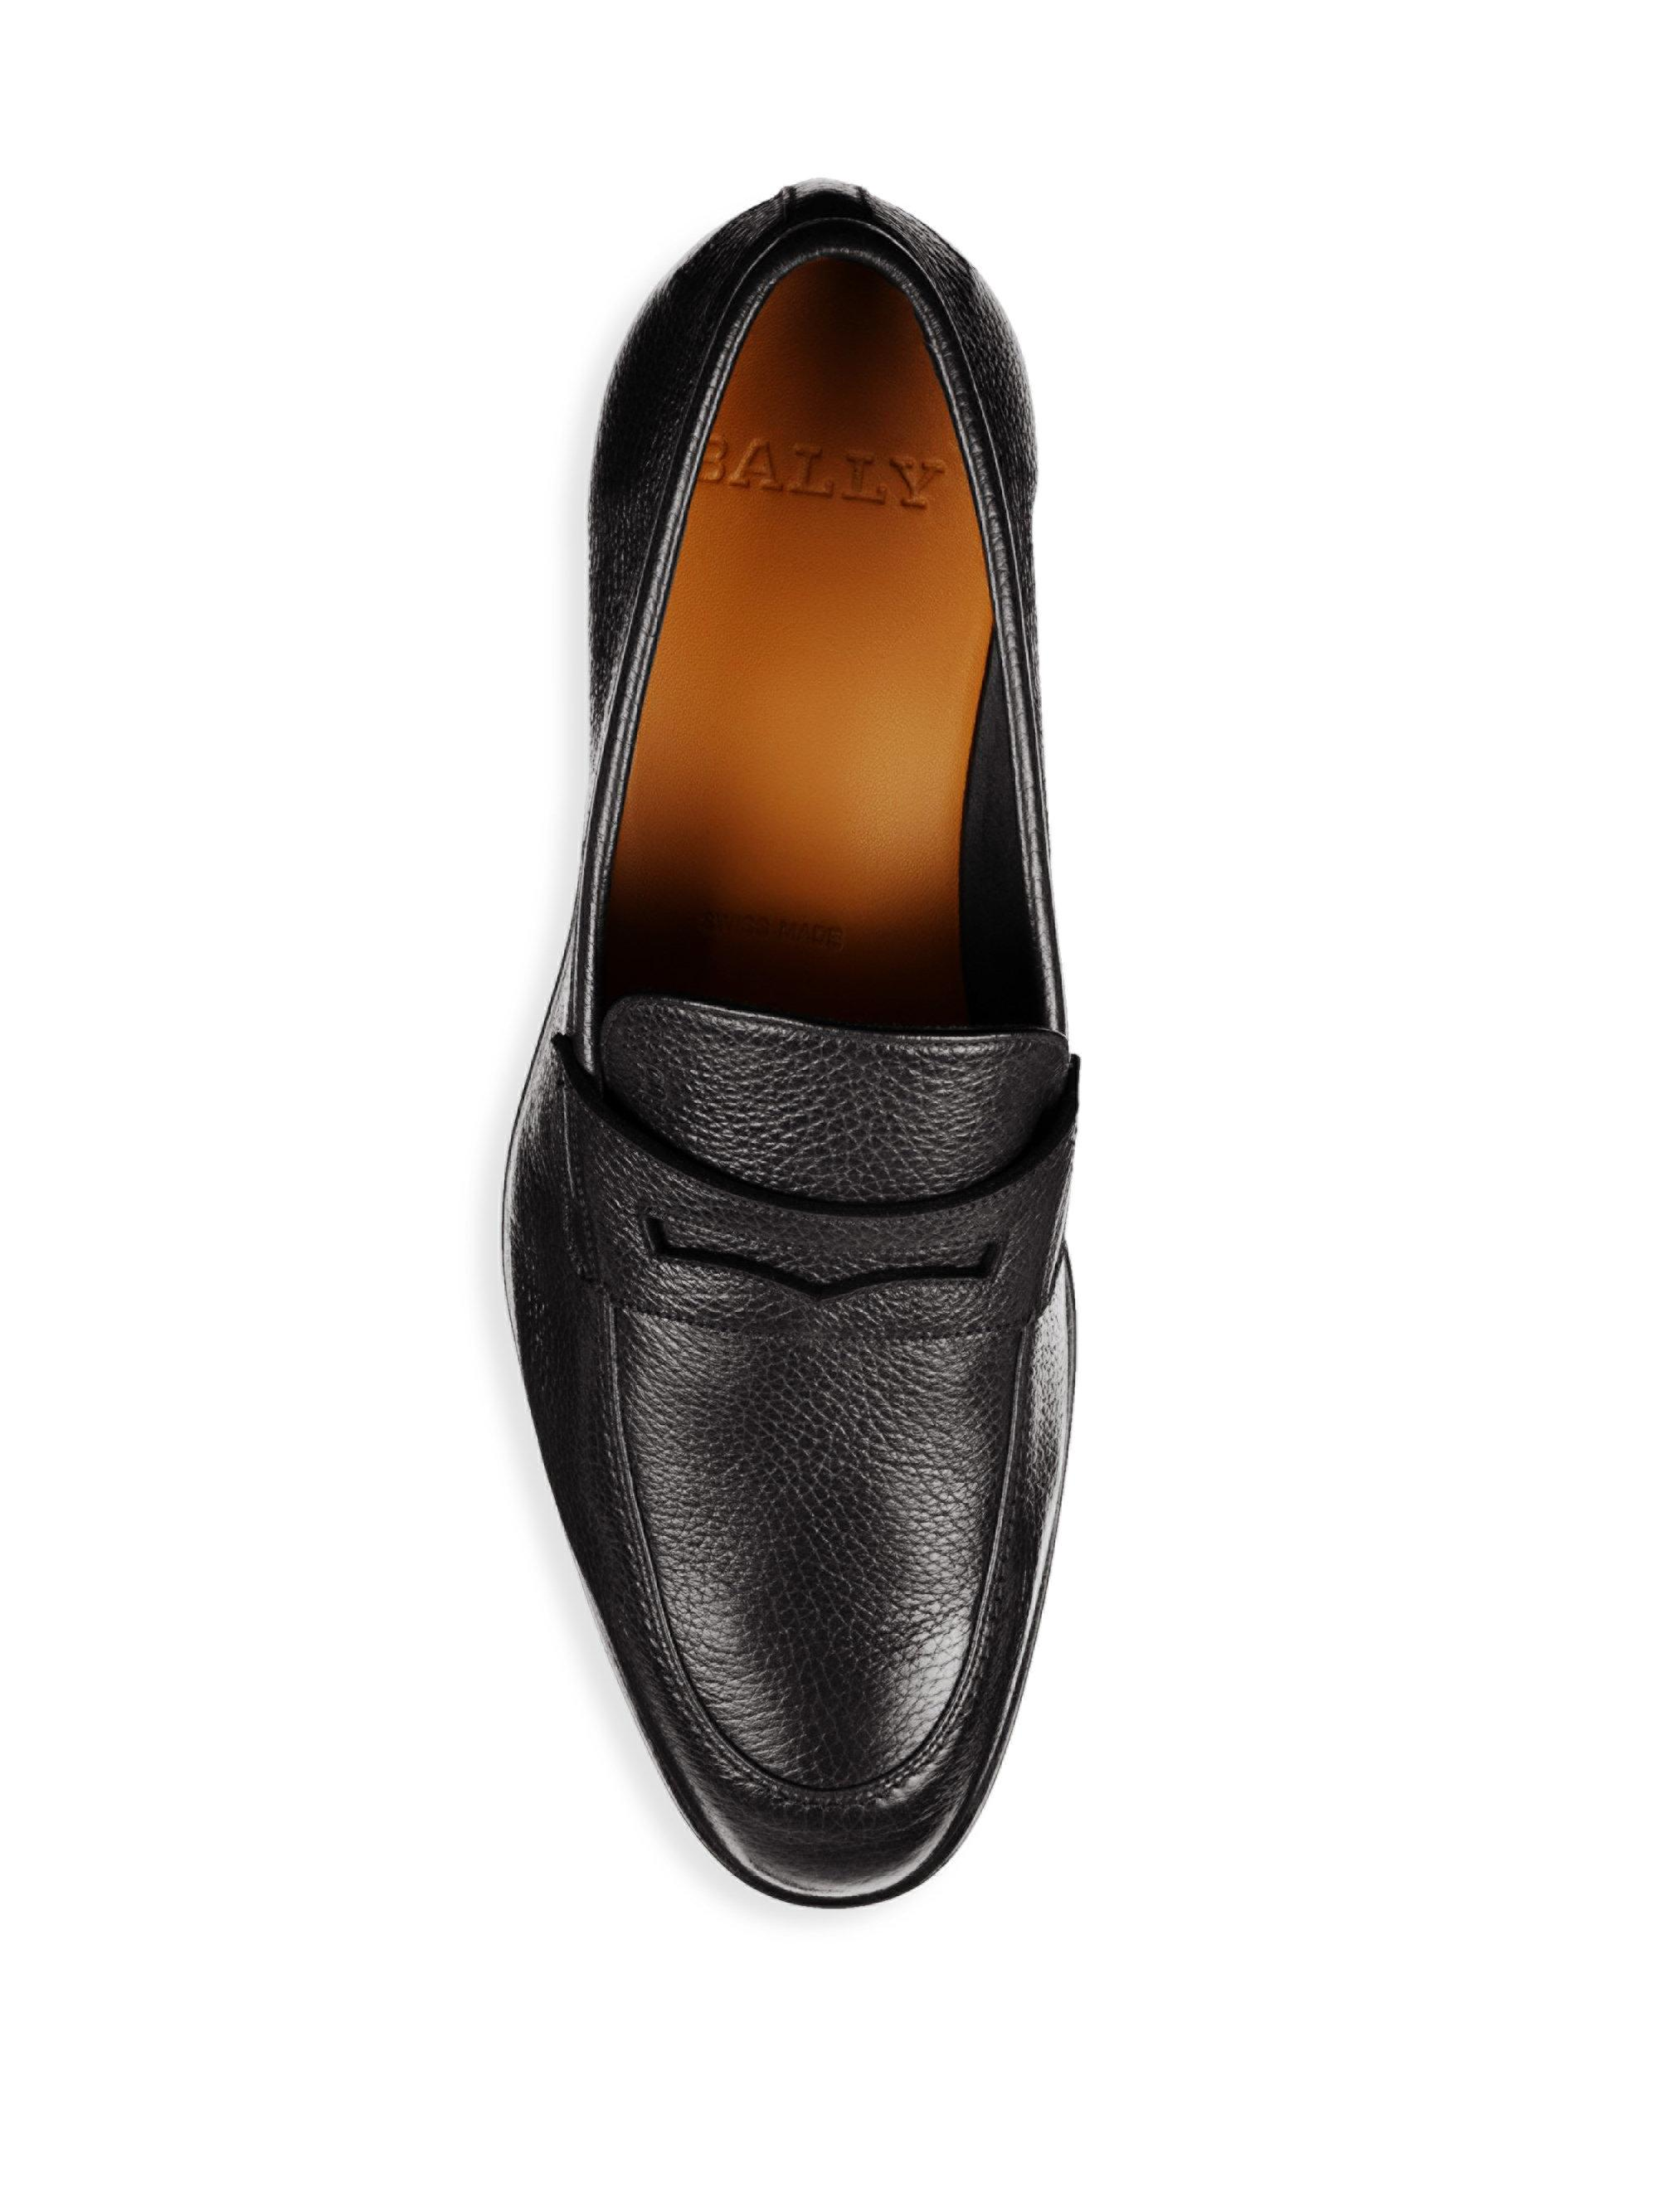 bf11cd9ff9f Bally Men s Webb Grained Leather Penny Loafers - Black - Size 6.5 D in  Black for Men - Lyst